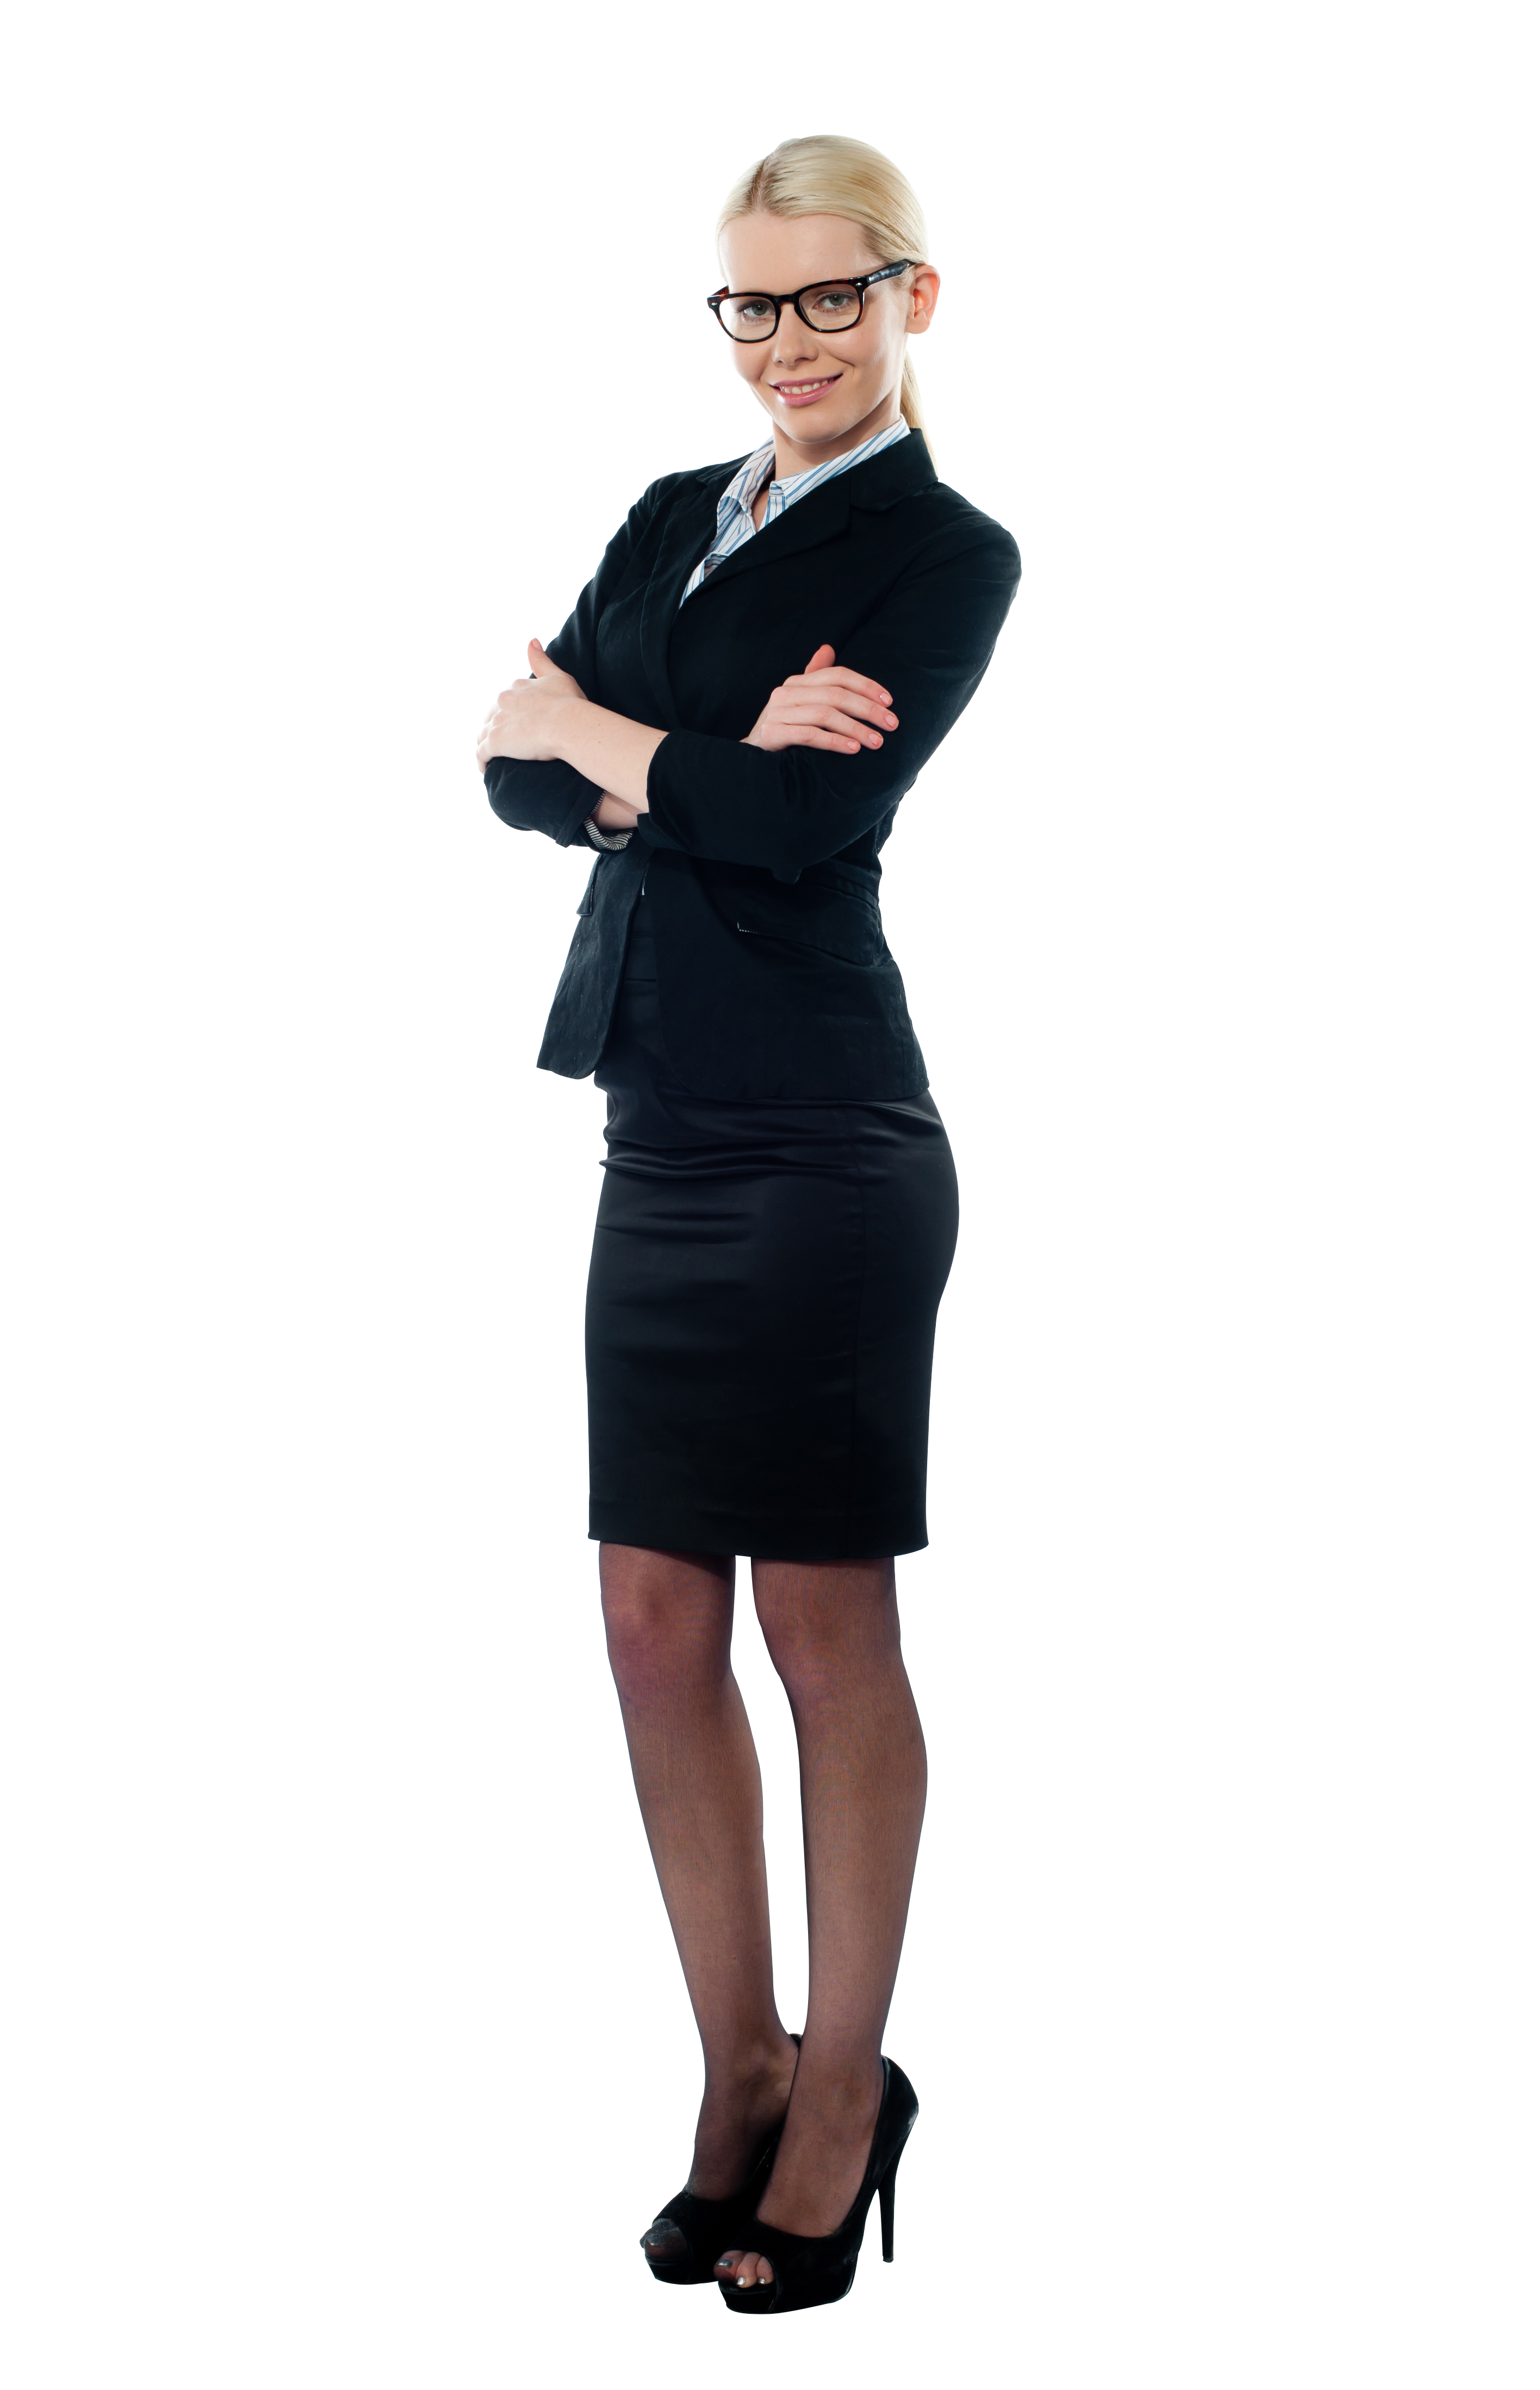 PNG For Business Use - 162305